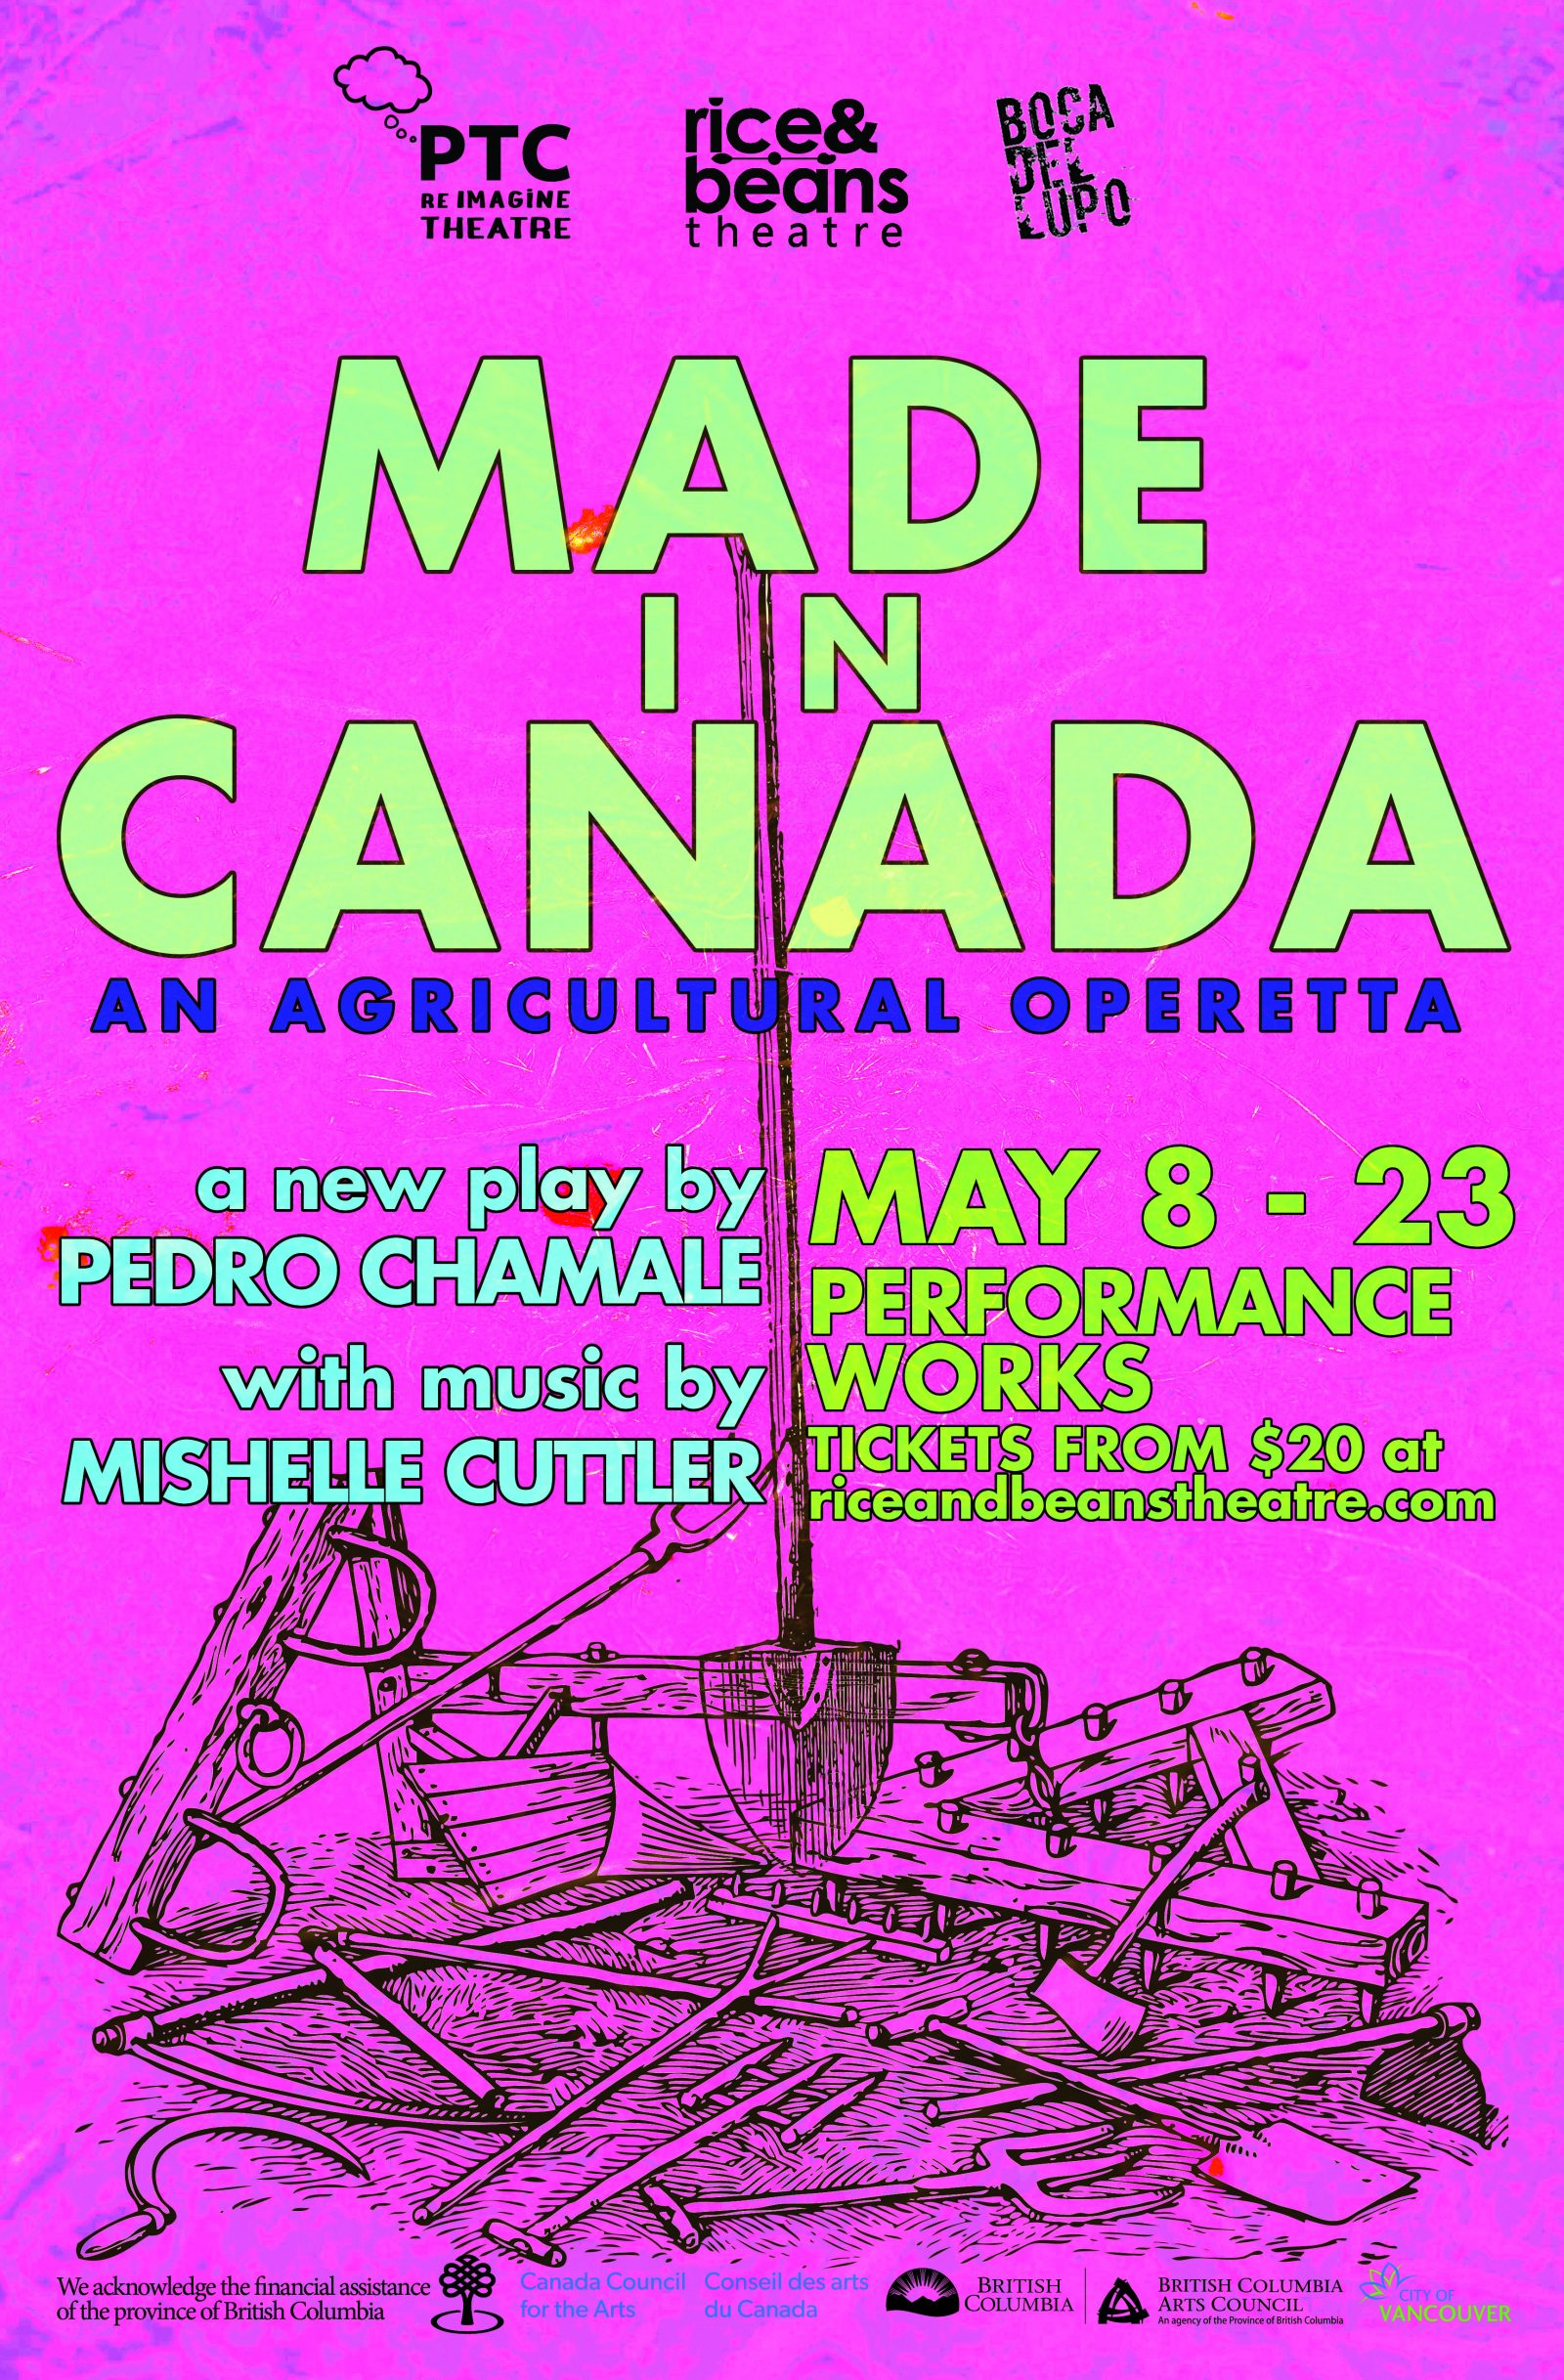 Image of Made in Canada: an agricultural operetta